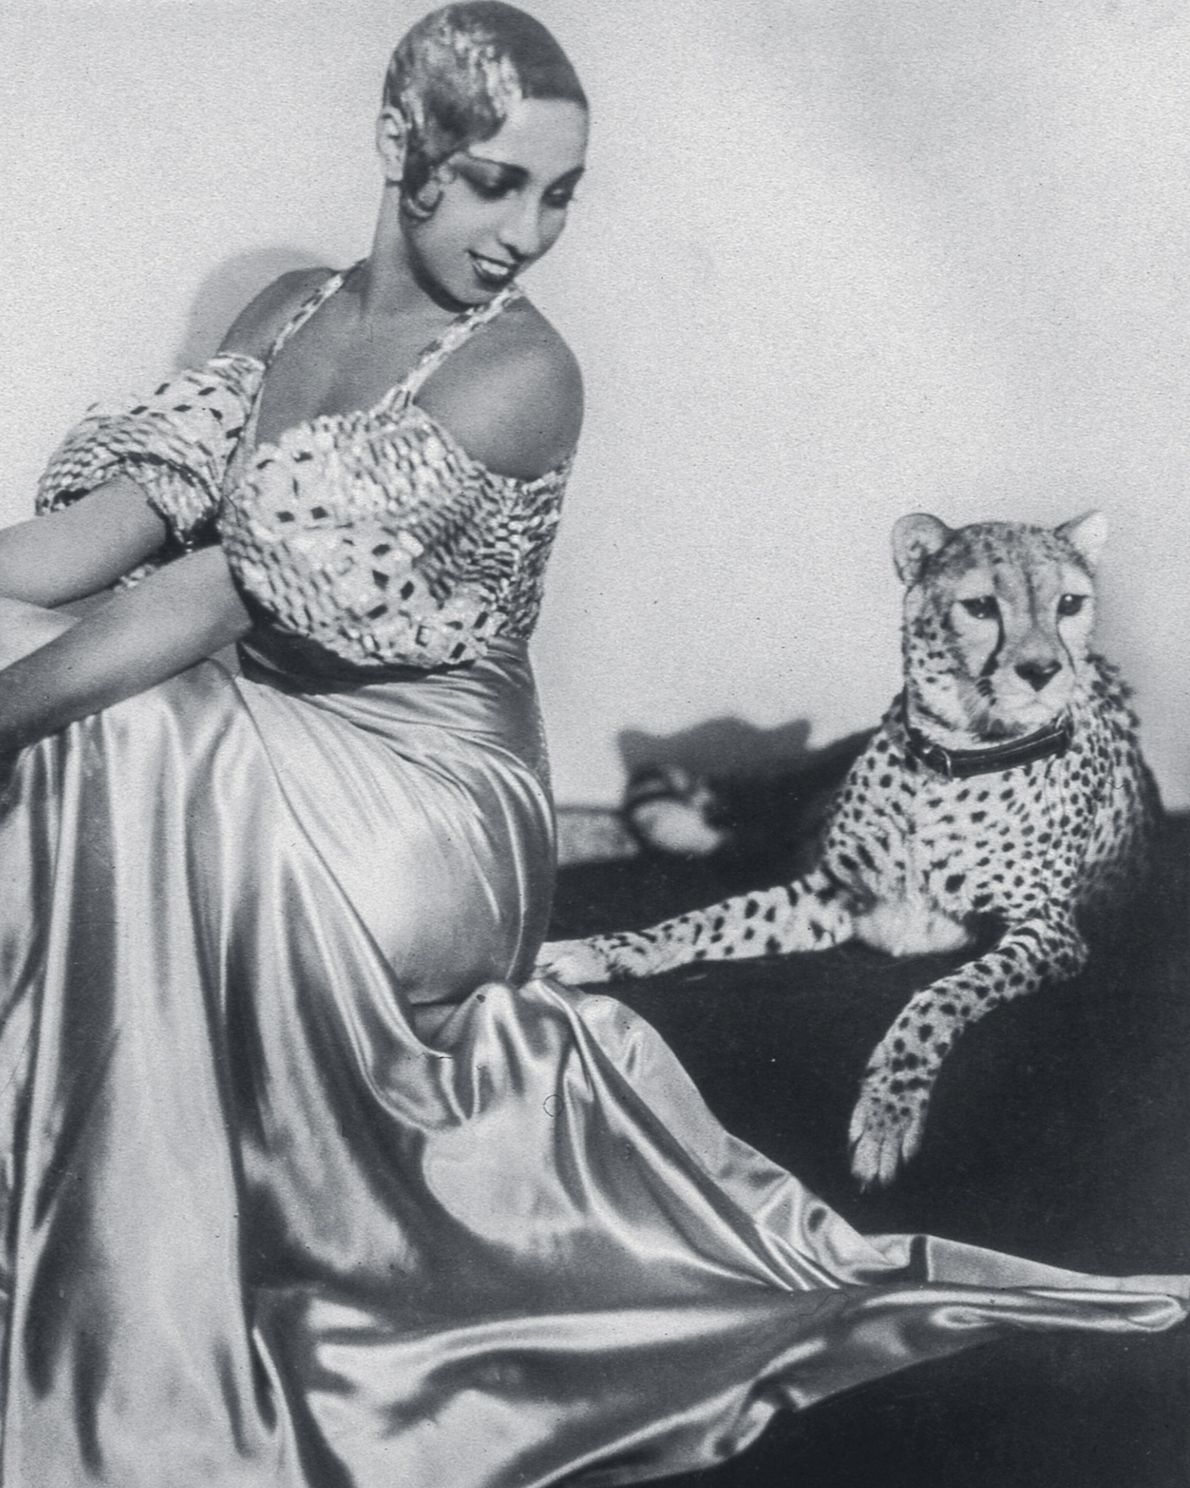 Cabaret star Josephine Baker poses with her cheetah, Chiquita, in the 1930s. A gift from a ...